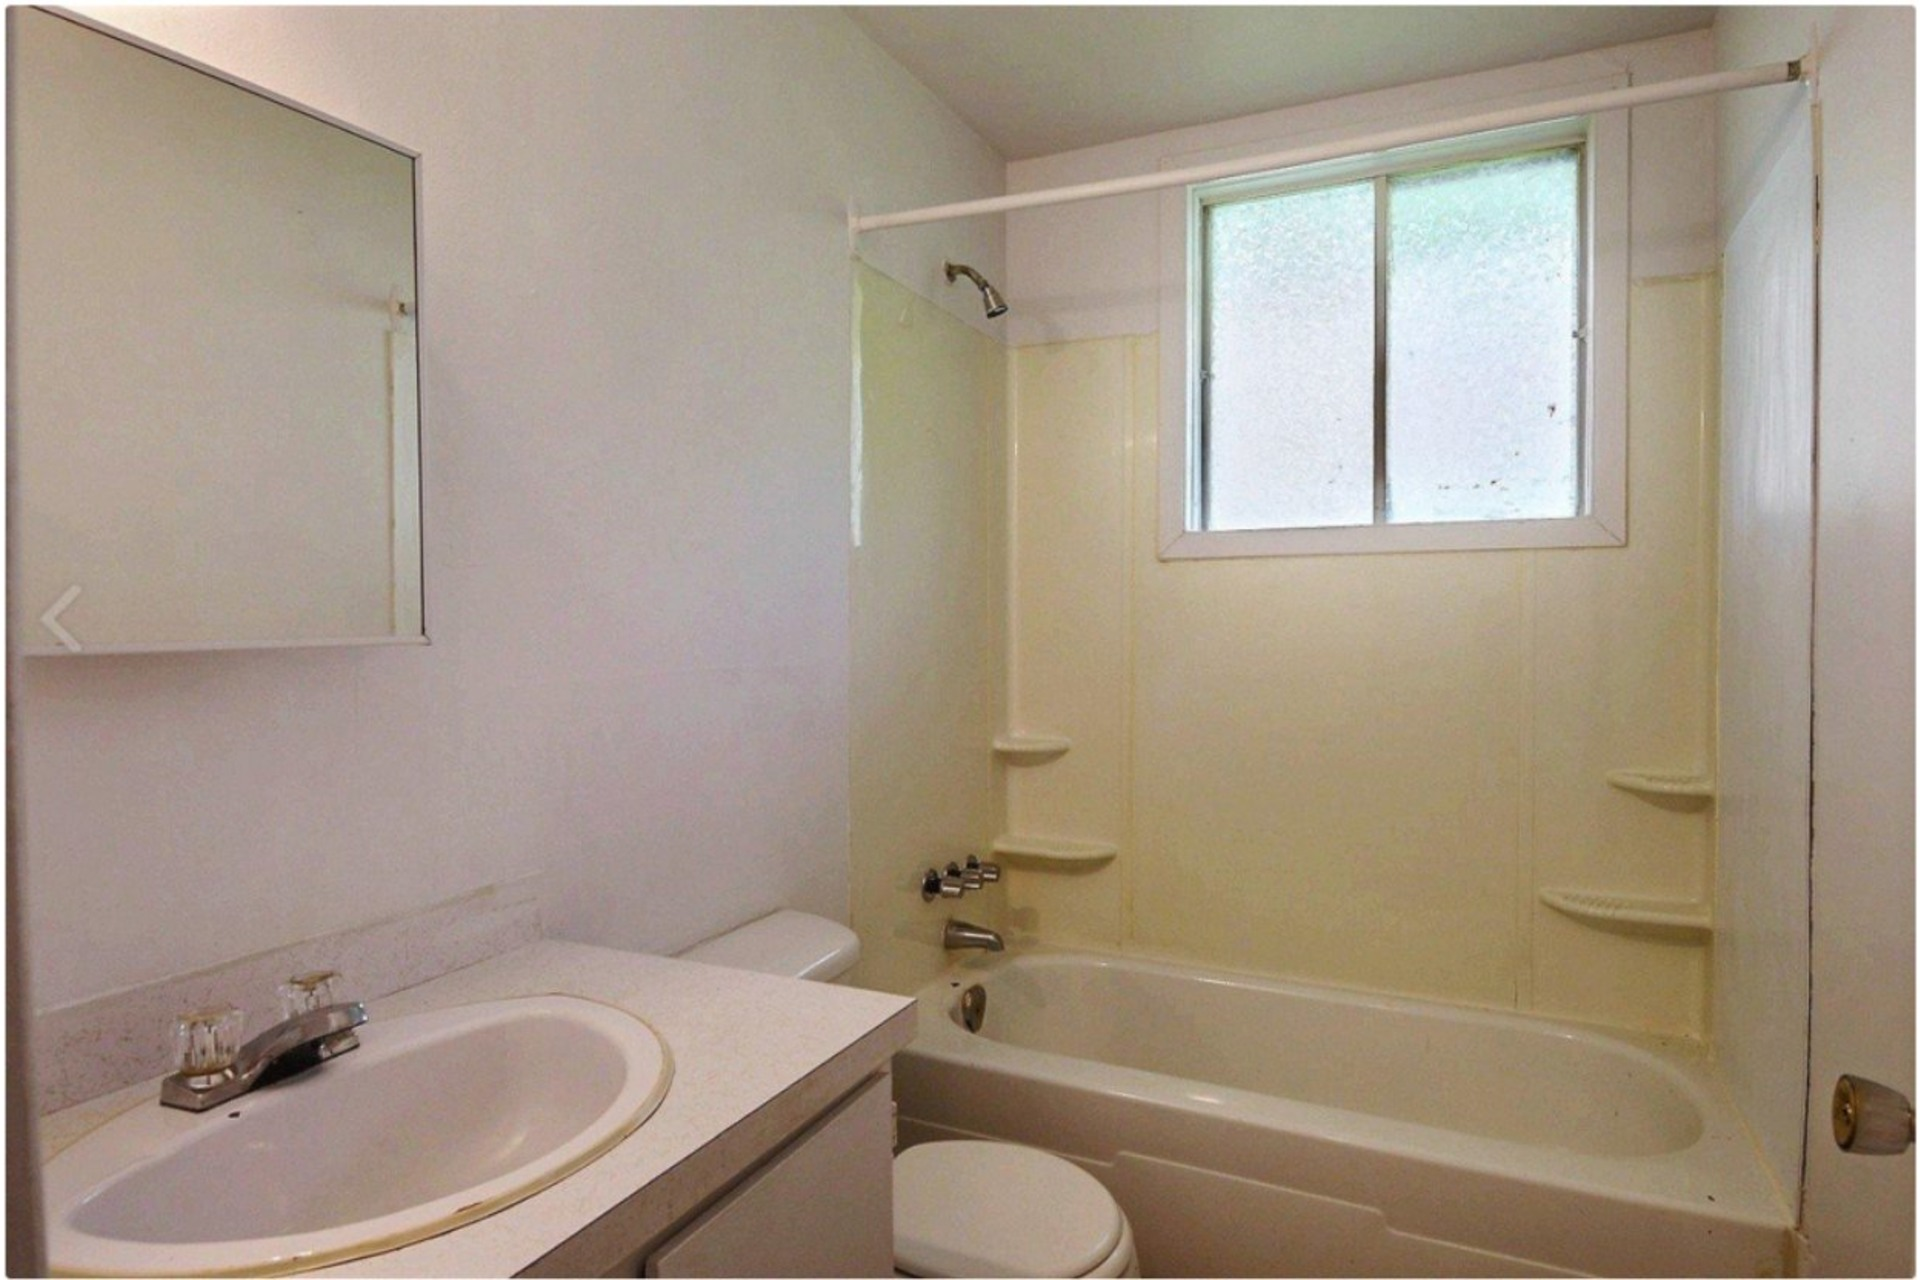 image 7 - Apartment For rent Sorel-Tracy - 5 rooms